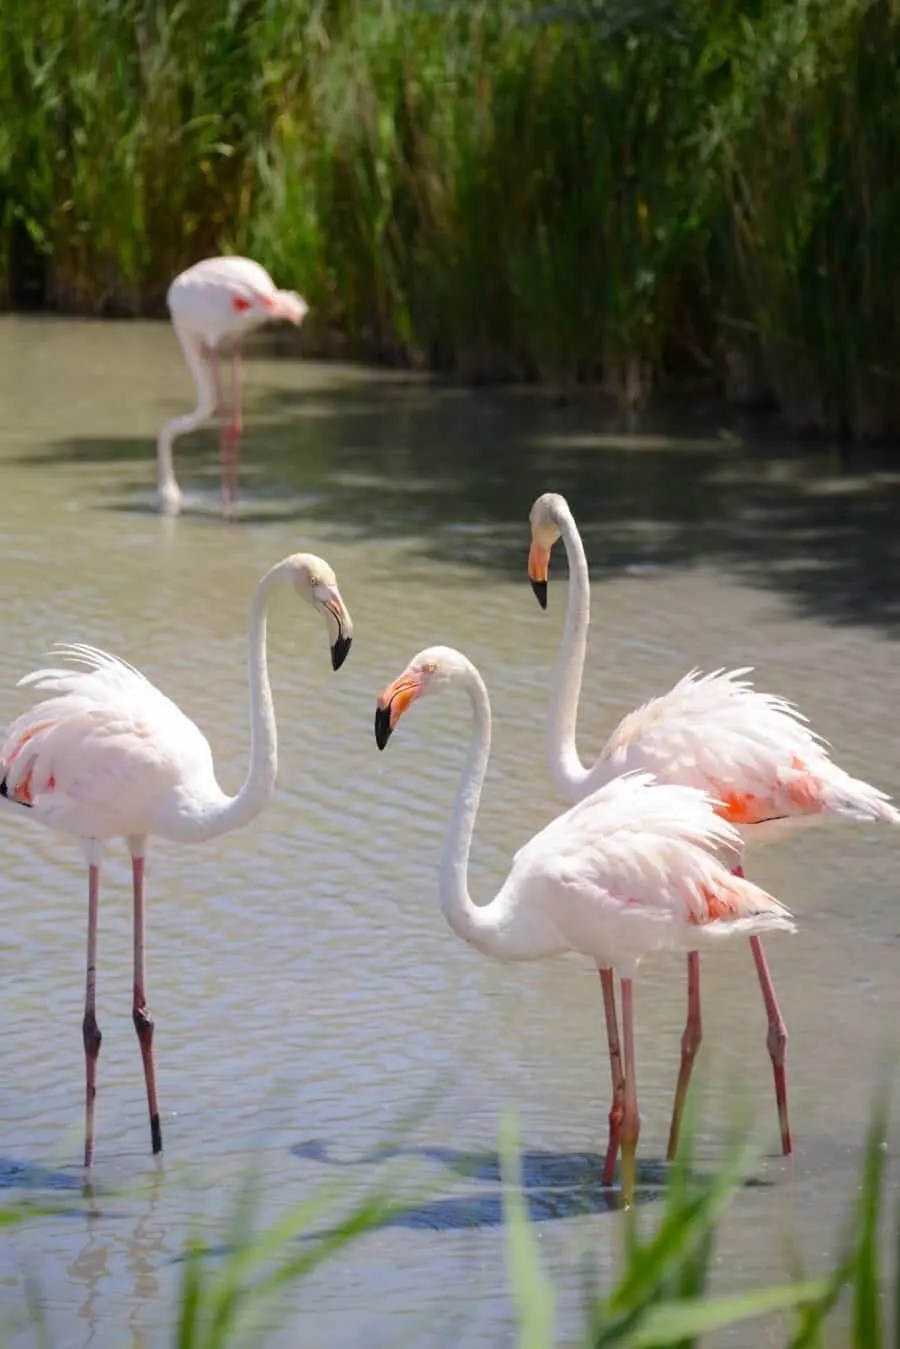 Flamingos in the Camargue - Places to Photograph in Provence, France